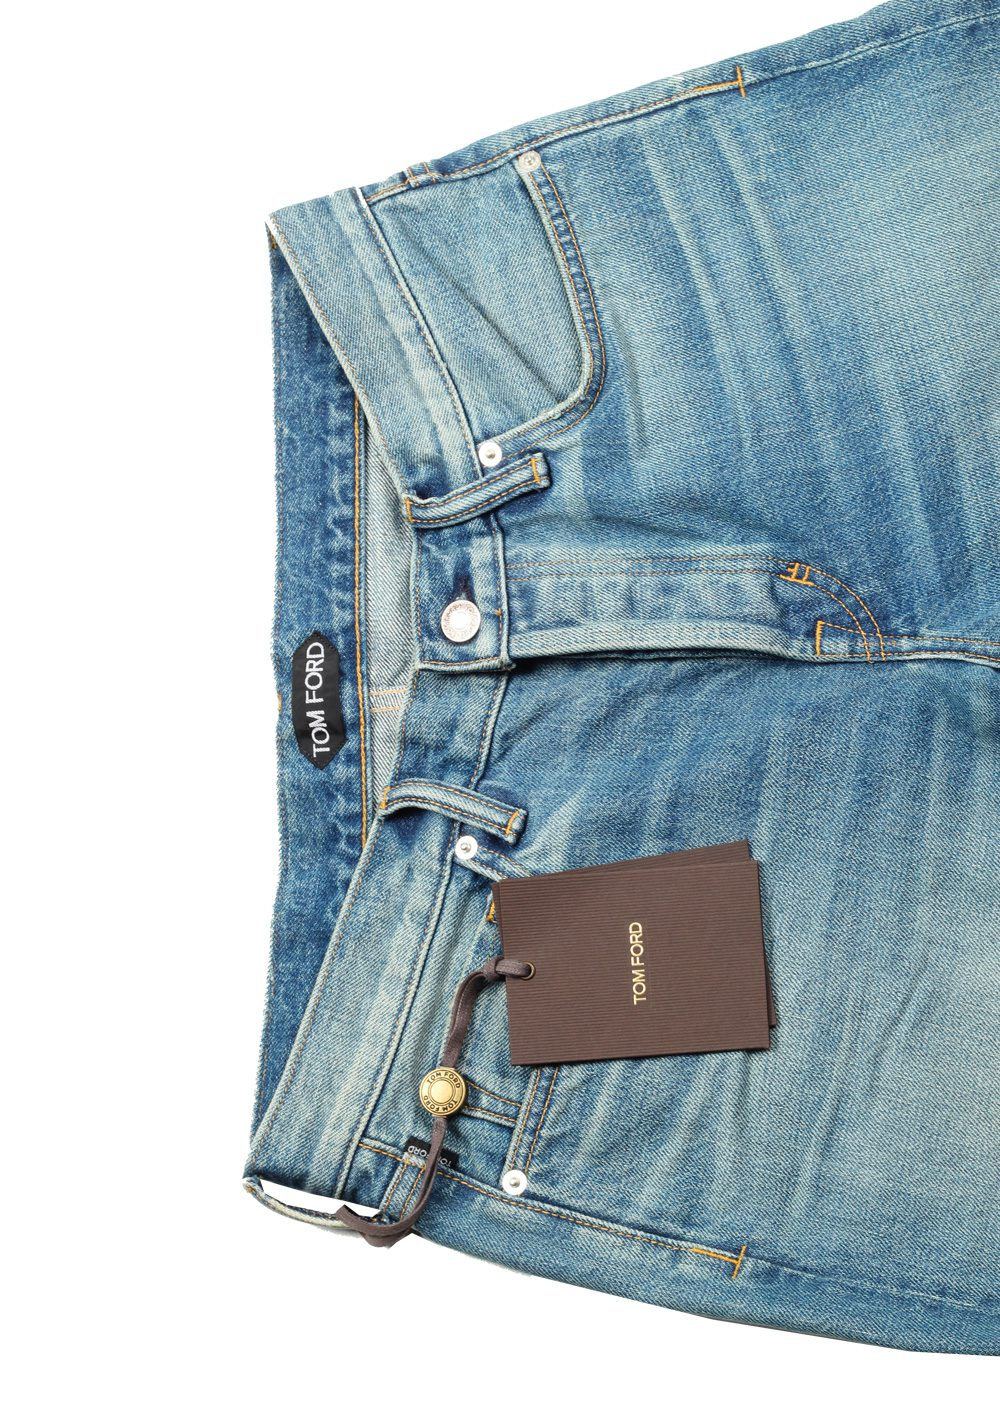 TOM FORD Blue Straight Jeans TFD002 Size 47 / 31 U.S. | Costume Limité